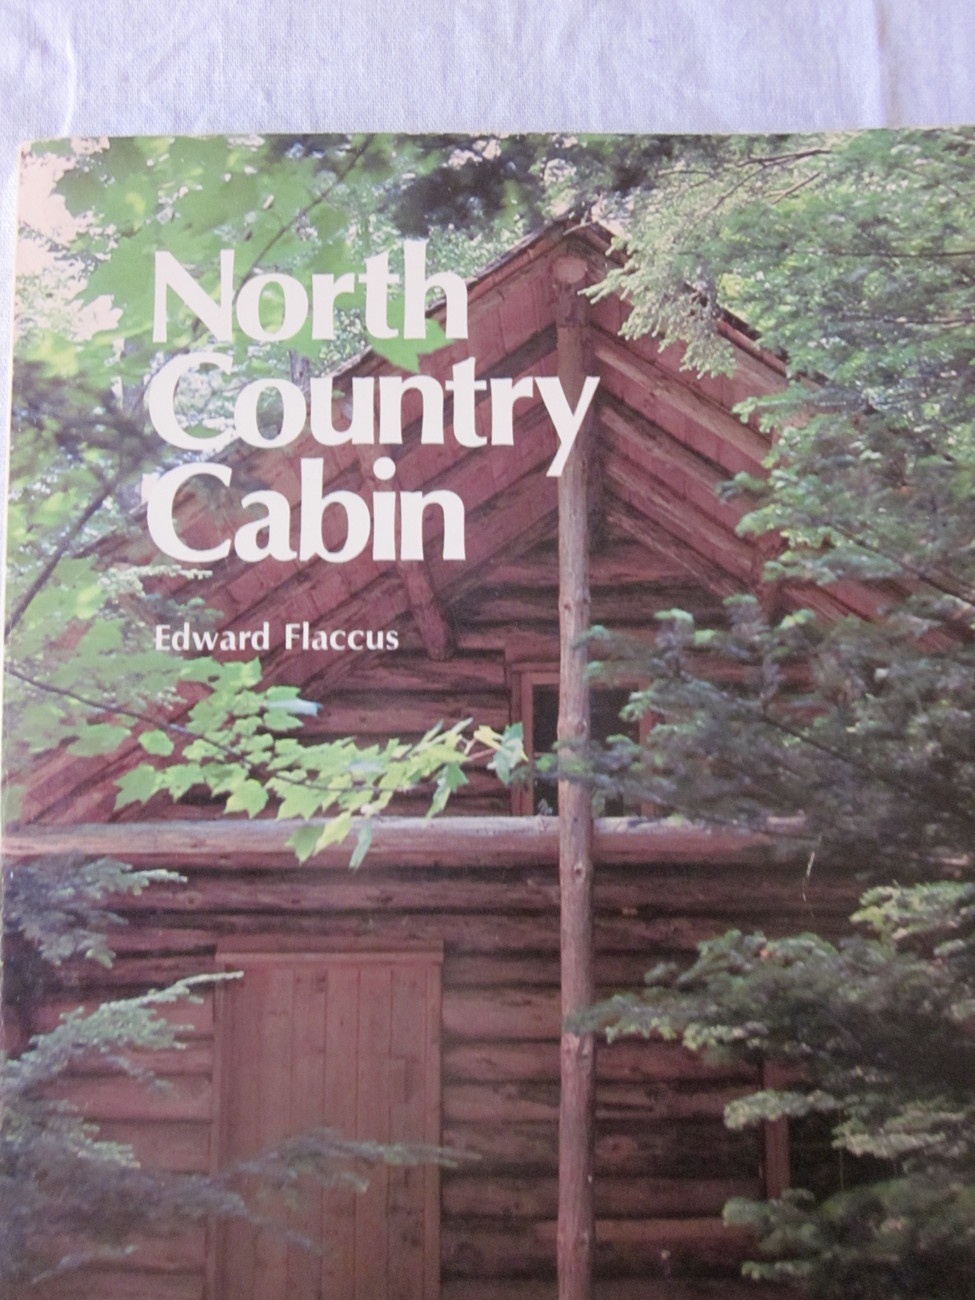 North Country Cabin by Edward Flaccus -on Building a Cabin